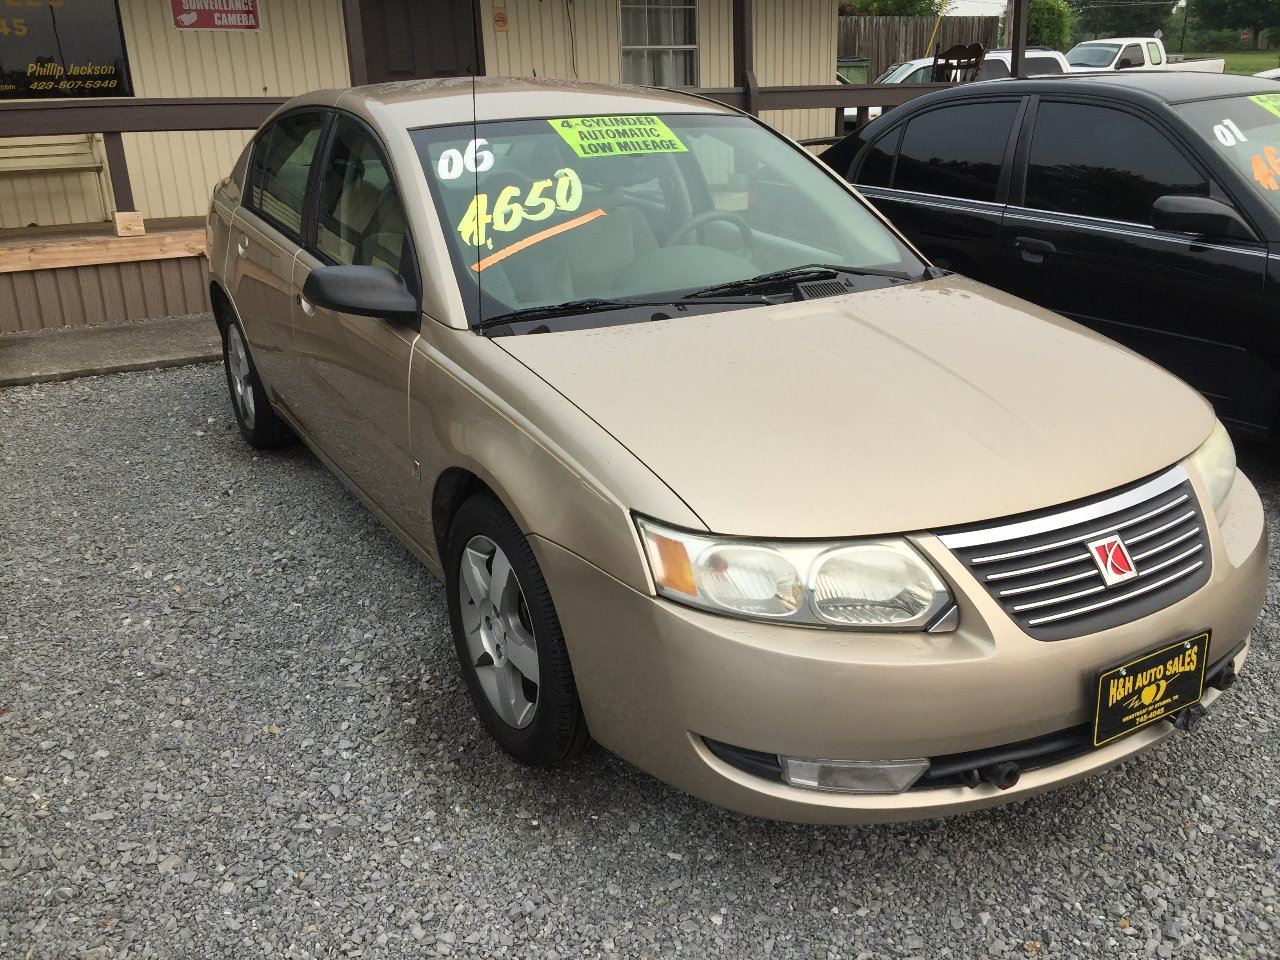 2006 Saturn Ion Dash Lights 2003 Sedan Automatic In Athens Auto Sales 1280x960